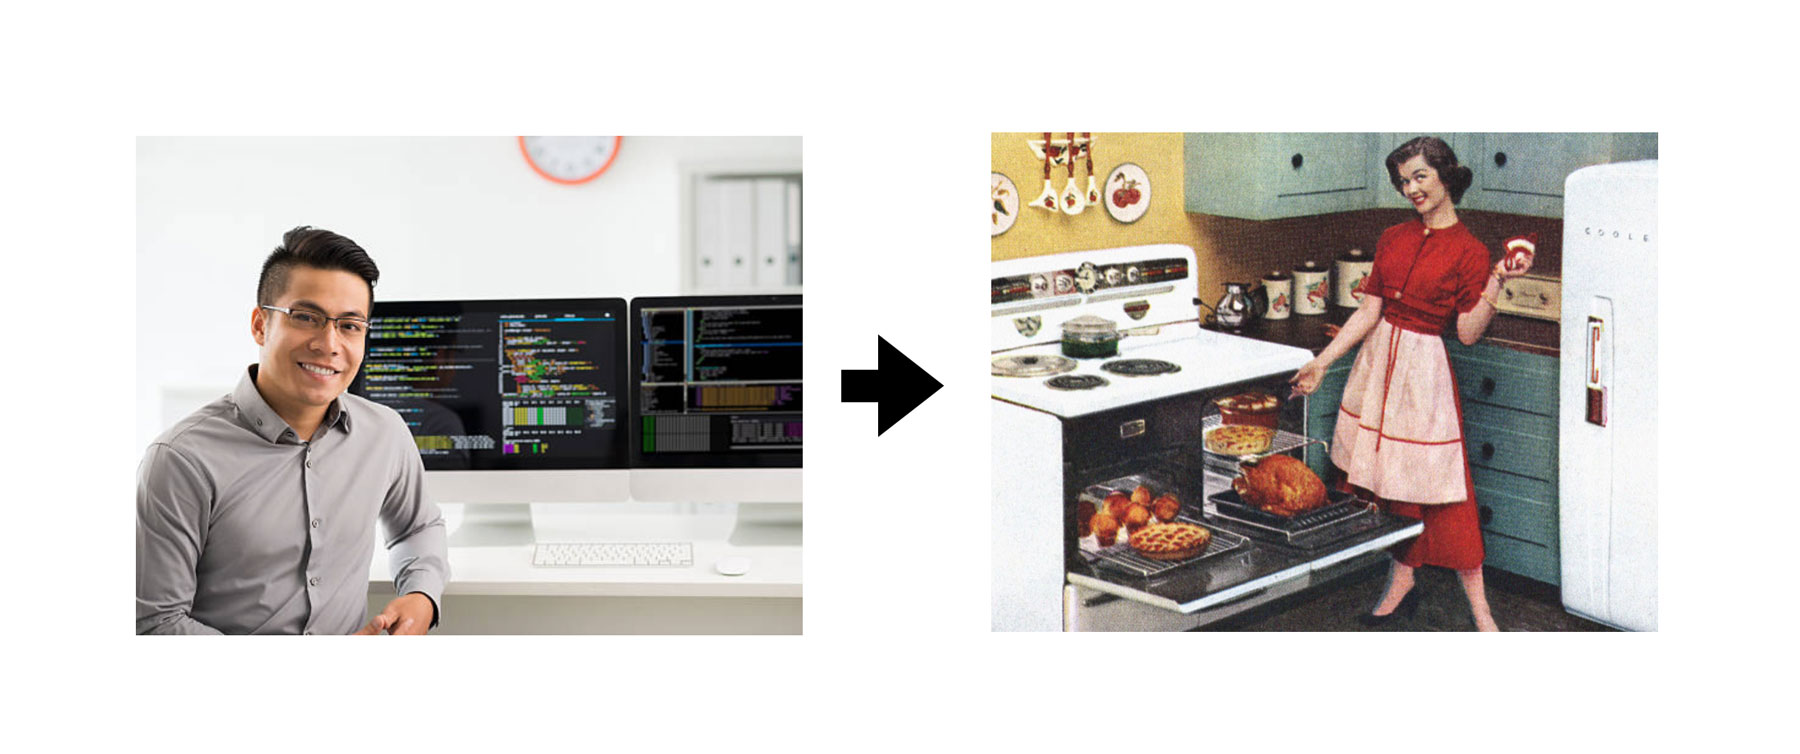 Man is to Programmer as Woman is to Homemaker: Bias in Machine Learning